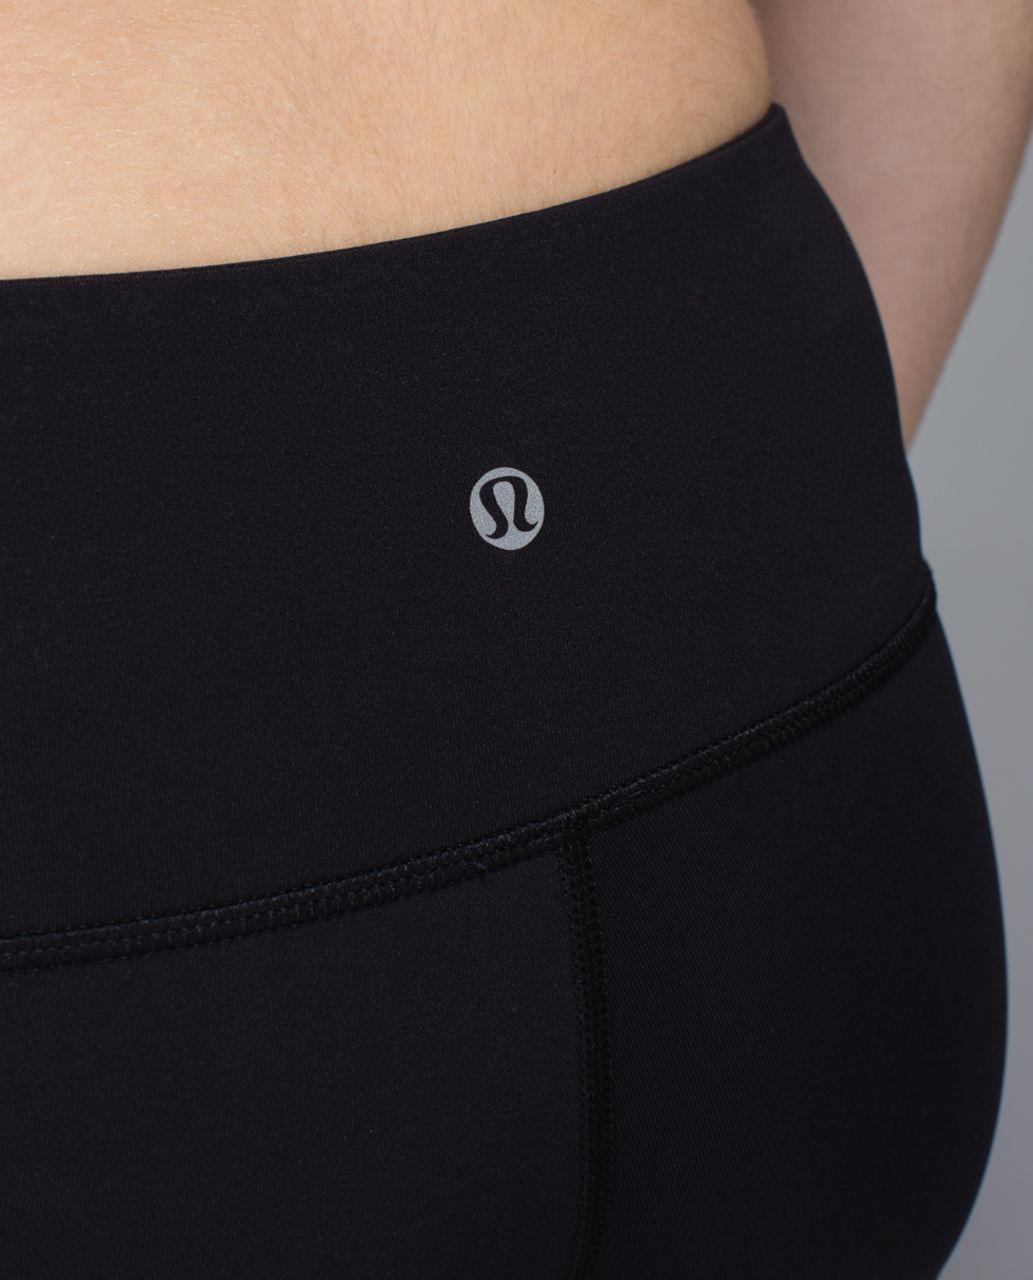 Lululemon Wunder Under Pant *Luxtreme - Black